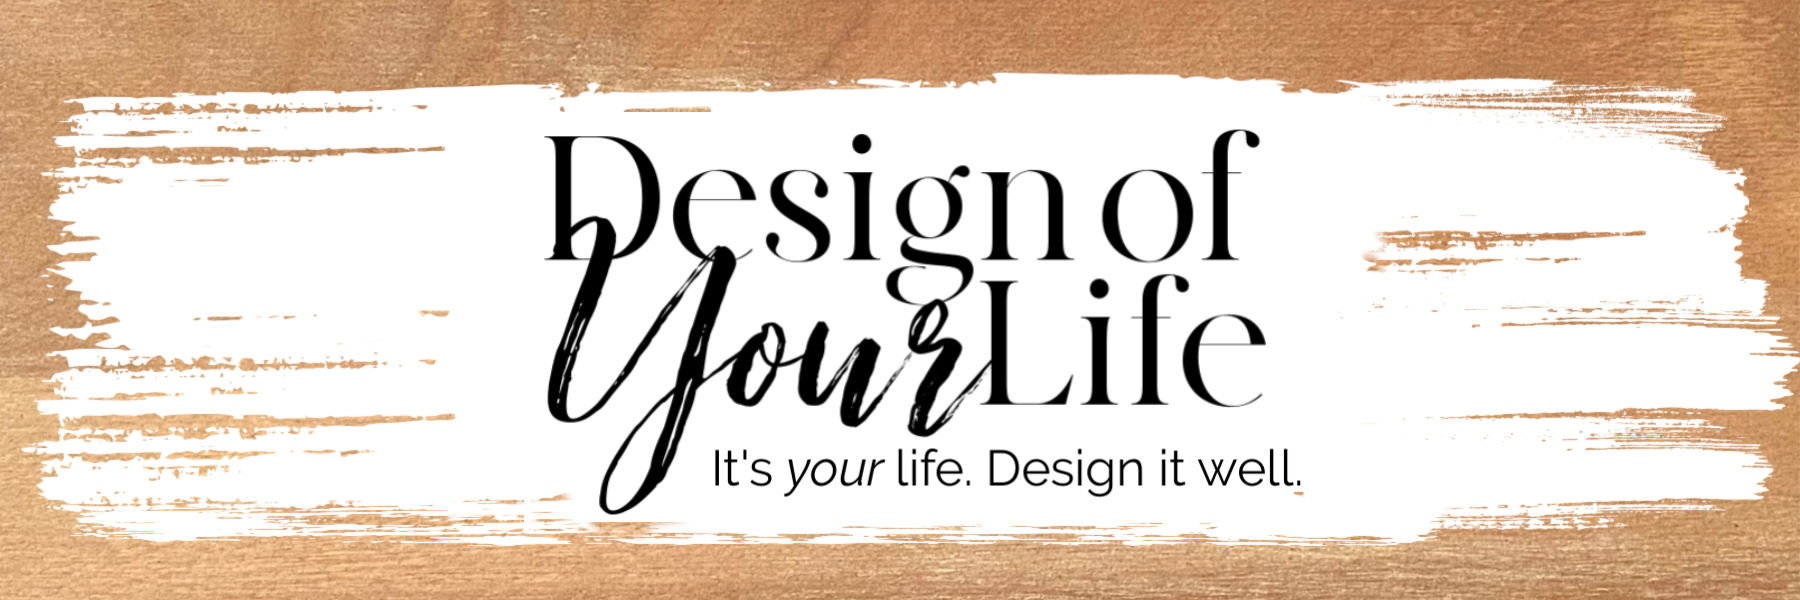 Design of Your Life